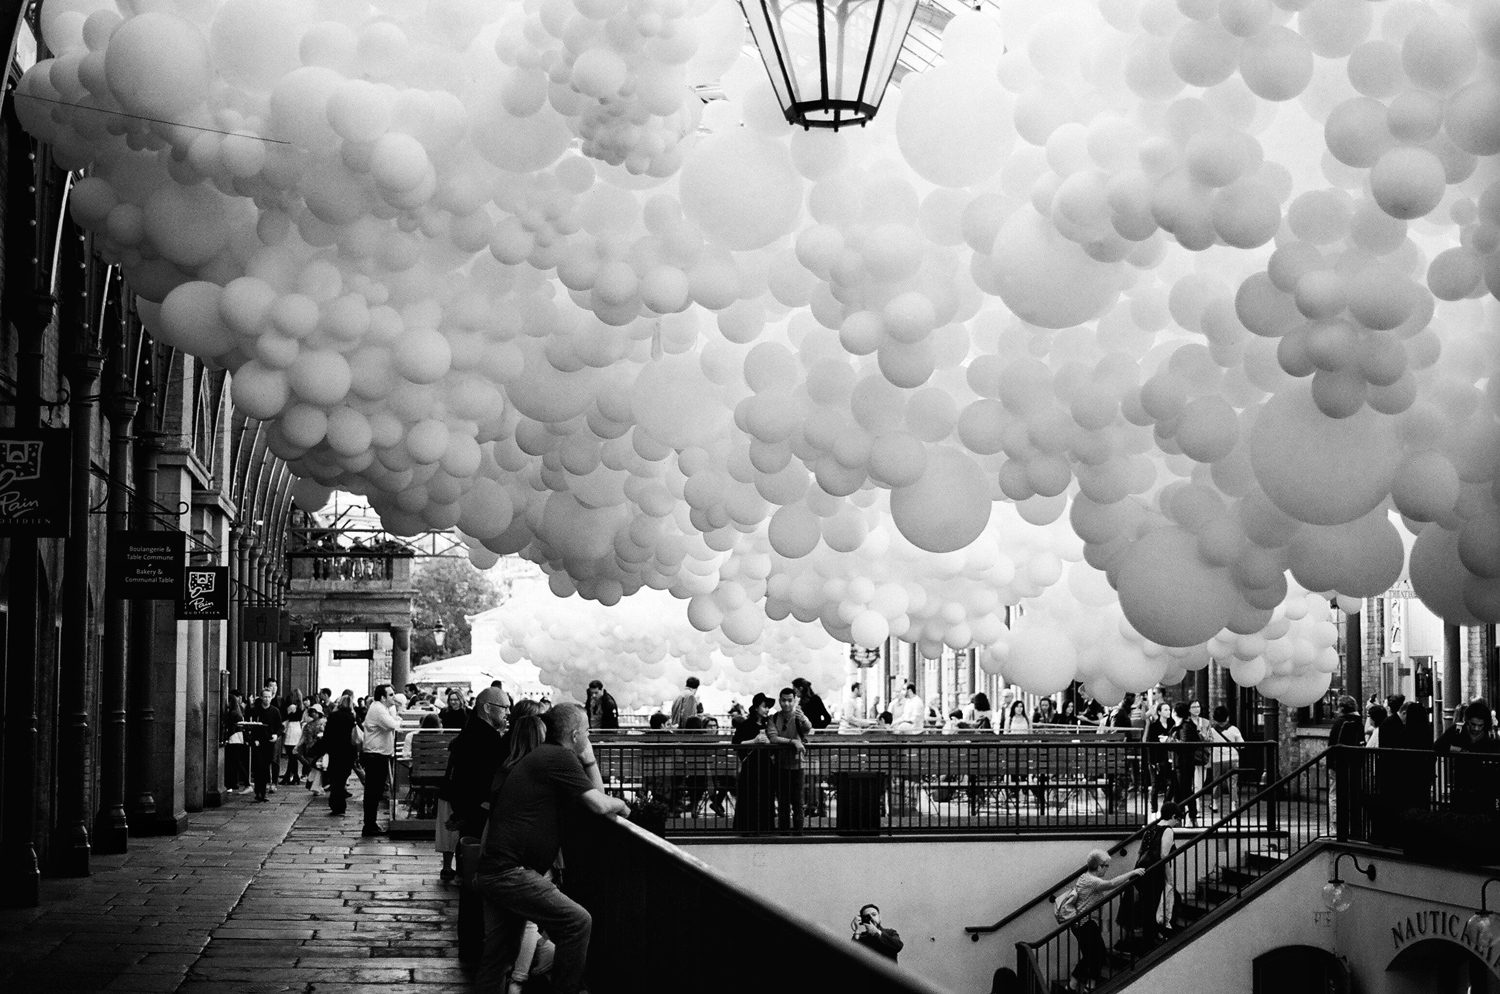 Black & white film photography by Sandeep Sumal Favourite_CoventGarden_XP2_OlympusOM1n